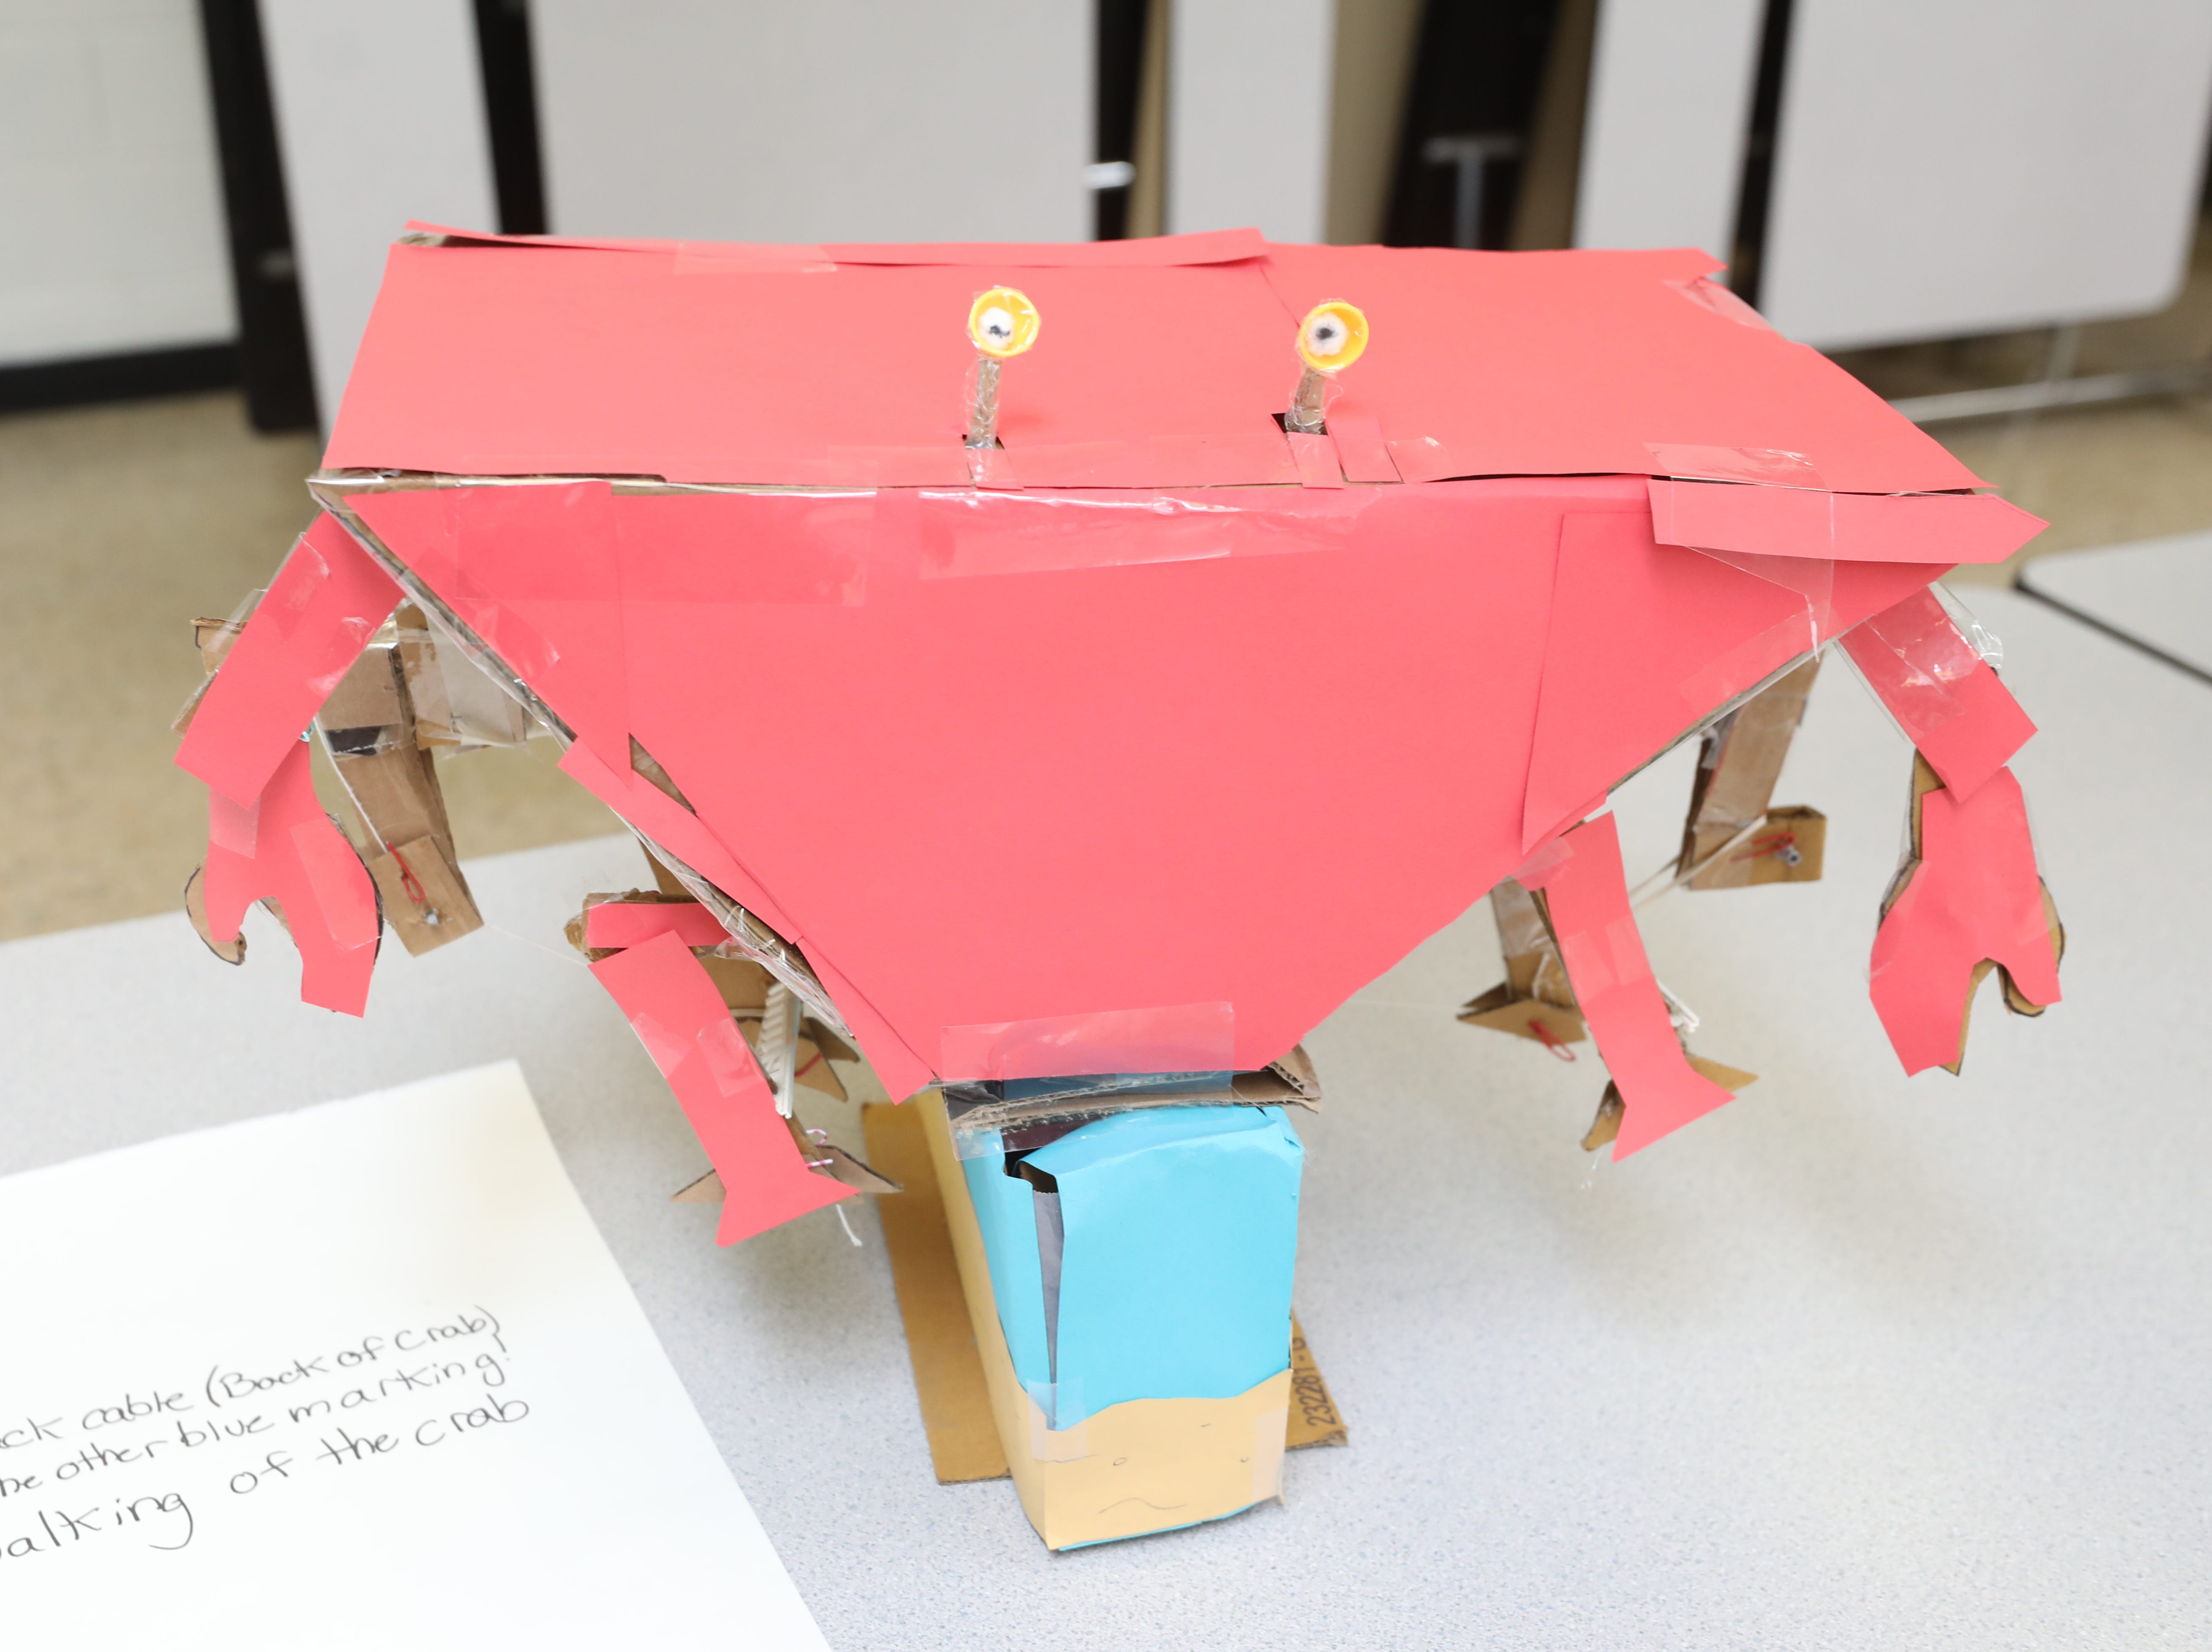 A mechanized crab is part of the Cardboard Animal-a-thon at Ramapo HS where engineering students work on and display their projects, making mechanical animals out of cardboard. They also helped younger students work on projects during the event held at Ramapo HS on February 9, 2019.